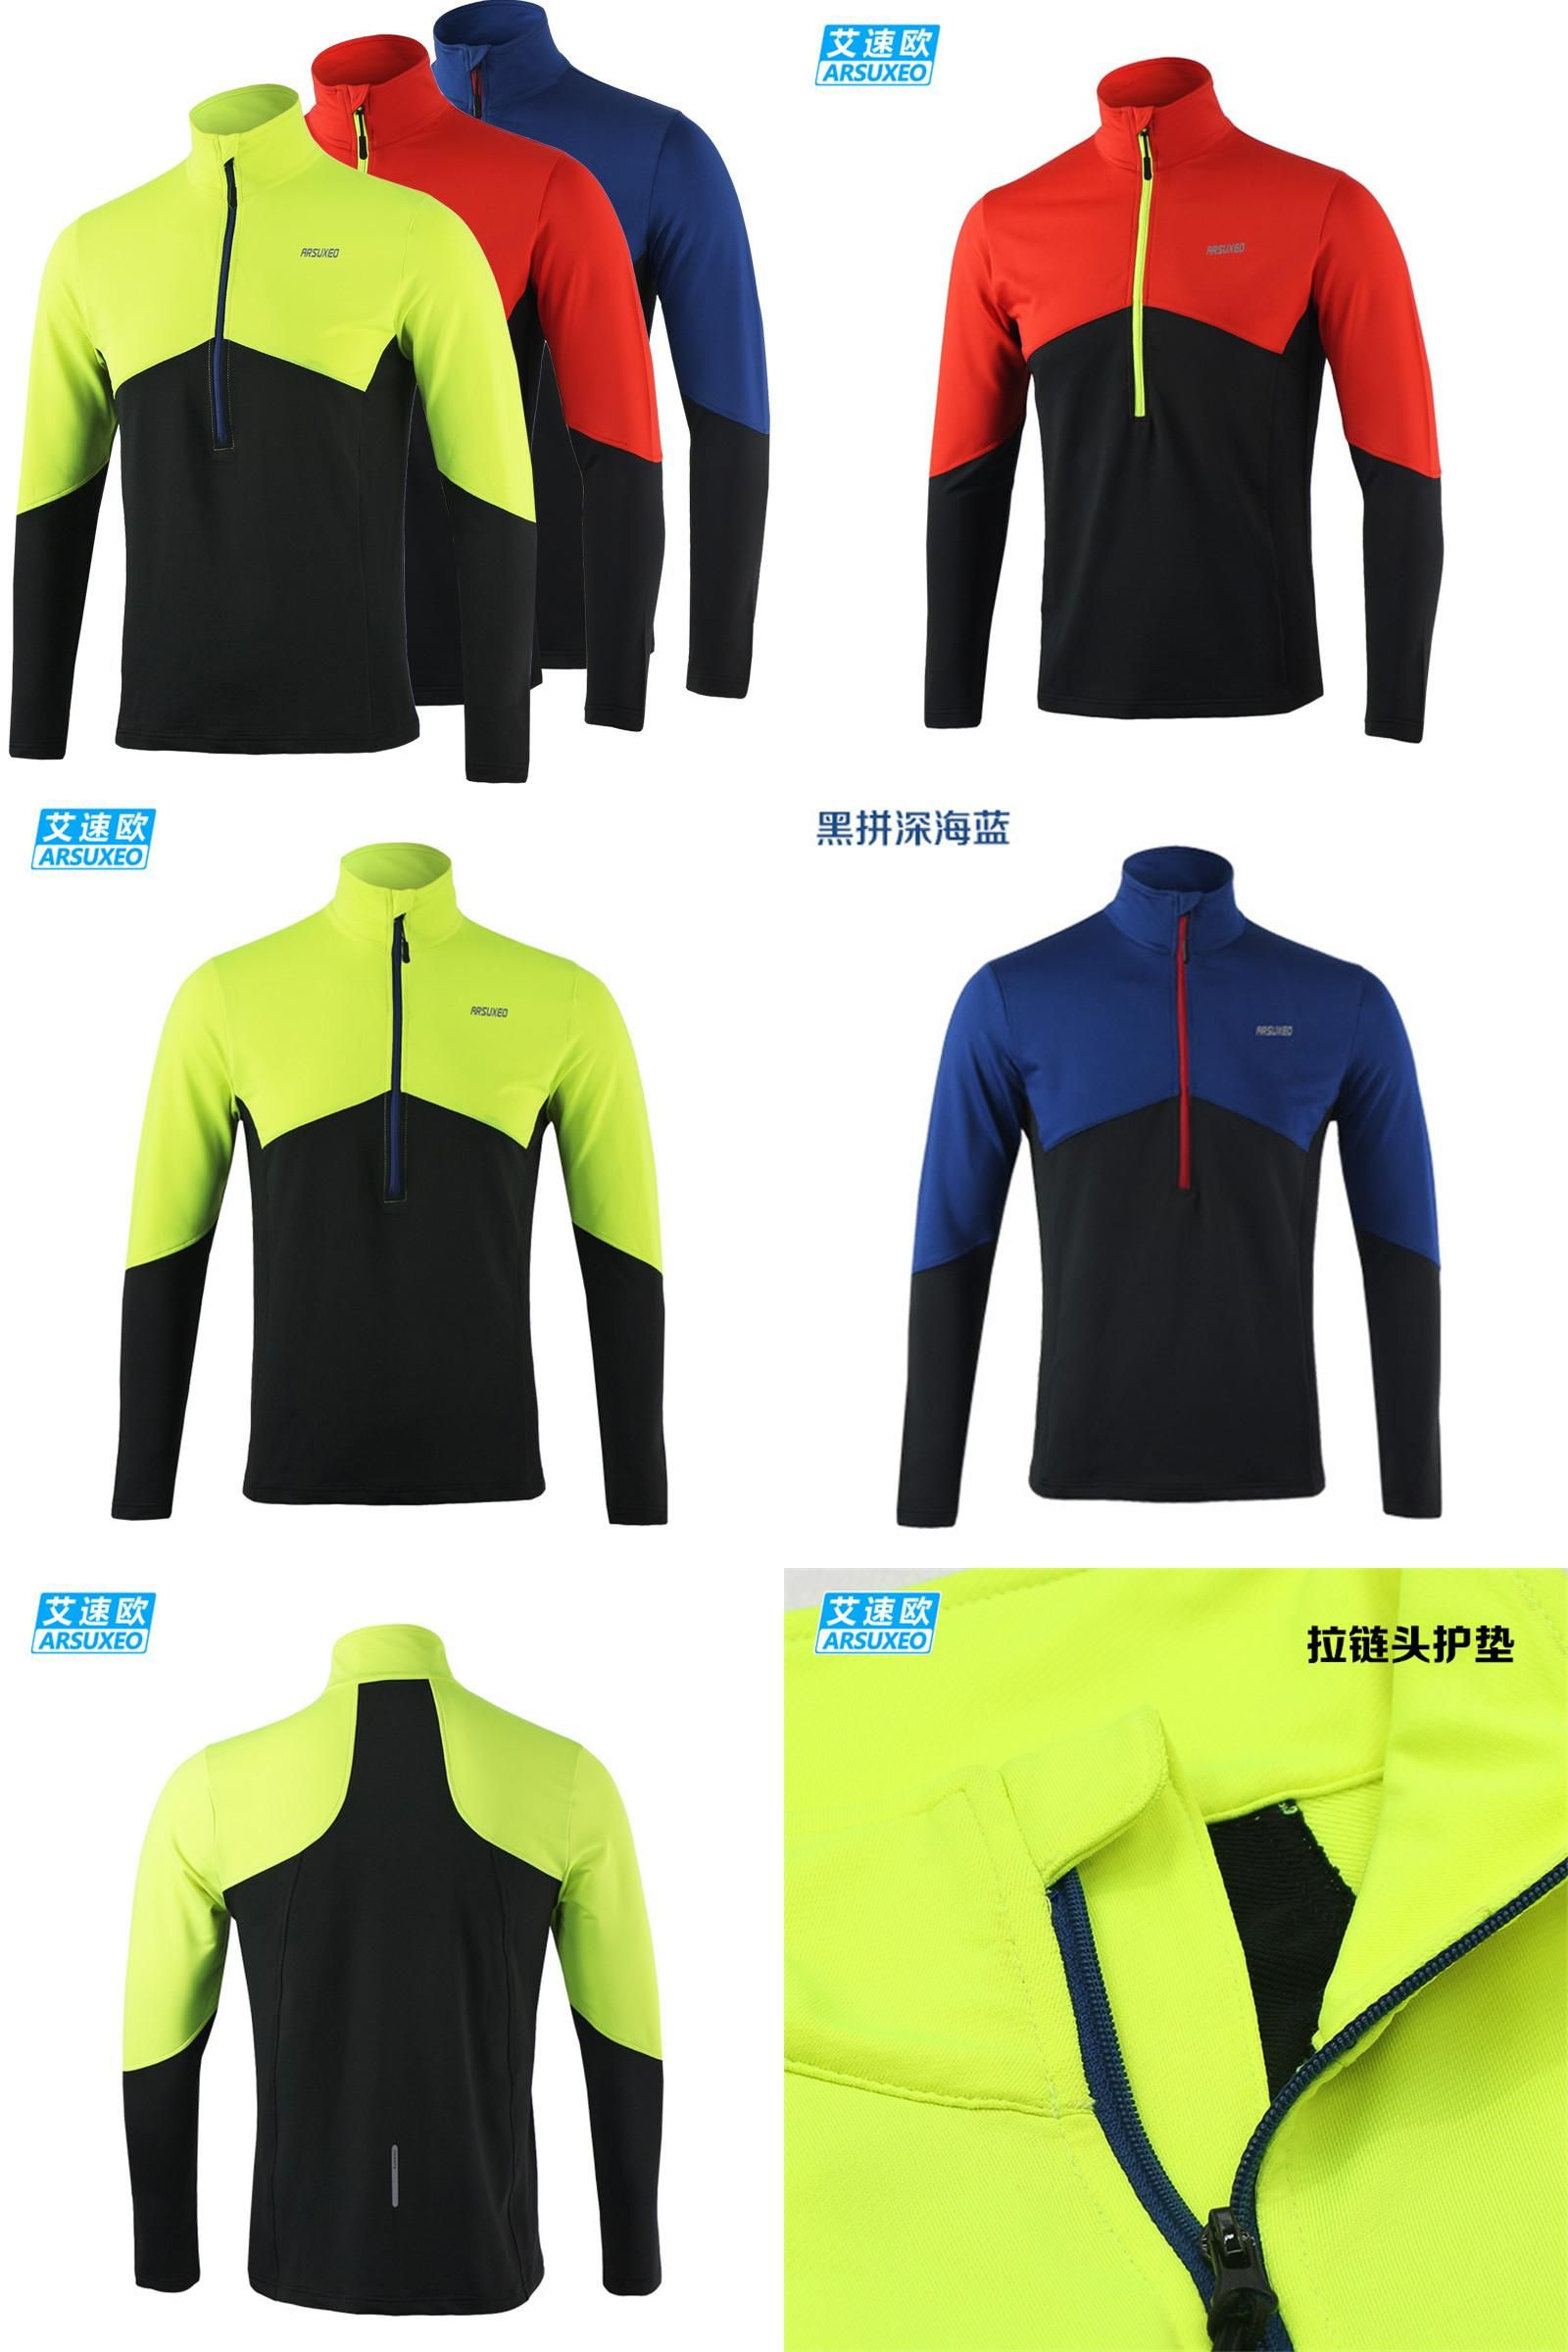 b29a68bef  Visit to Buy  ARSUXEO Dry Fit Running Shirt Men Cycling Jersey Long Sleeve  T